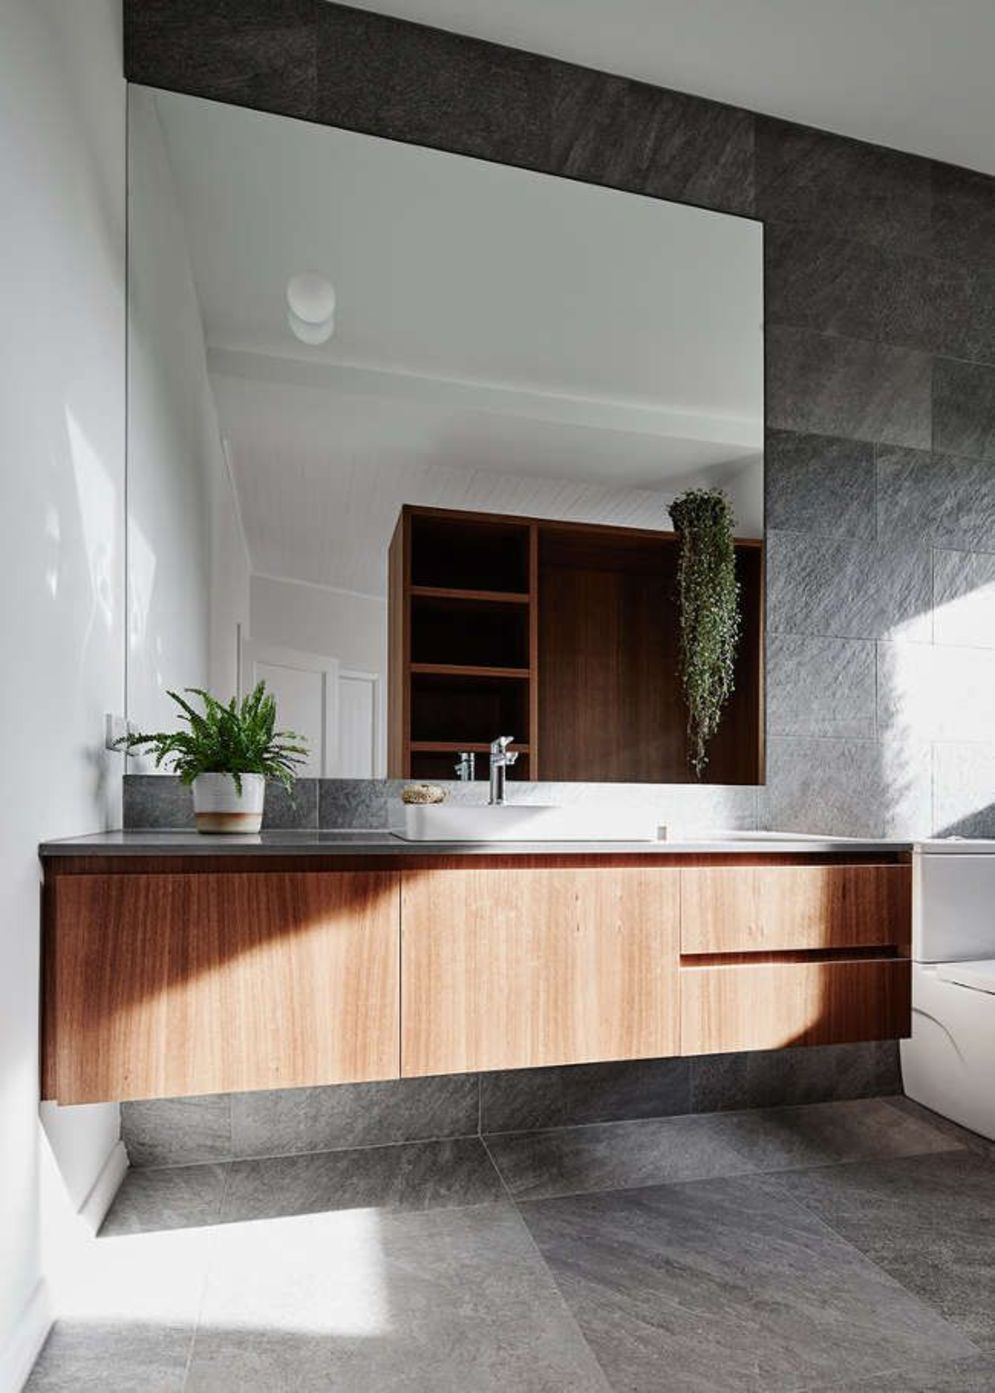 Timeless bathroom designs with wood accents enhancing more natural vibes Image 22